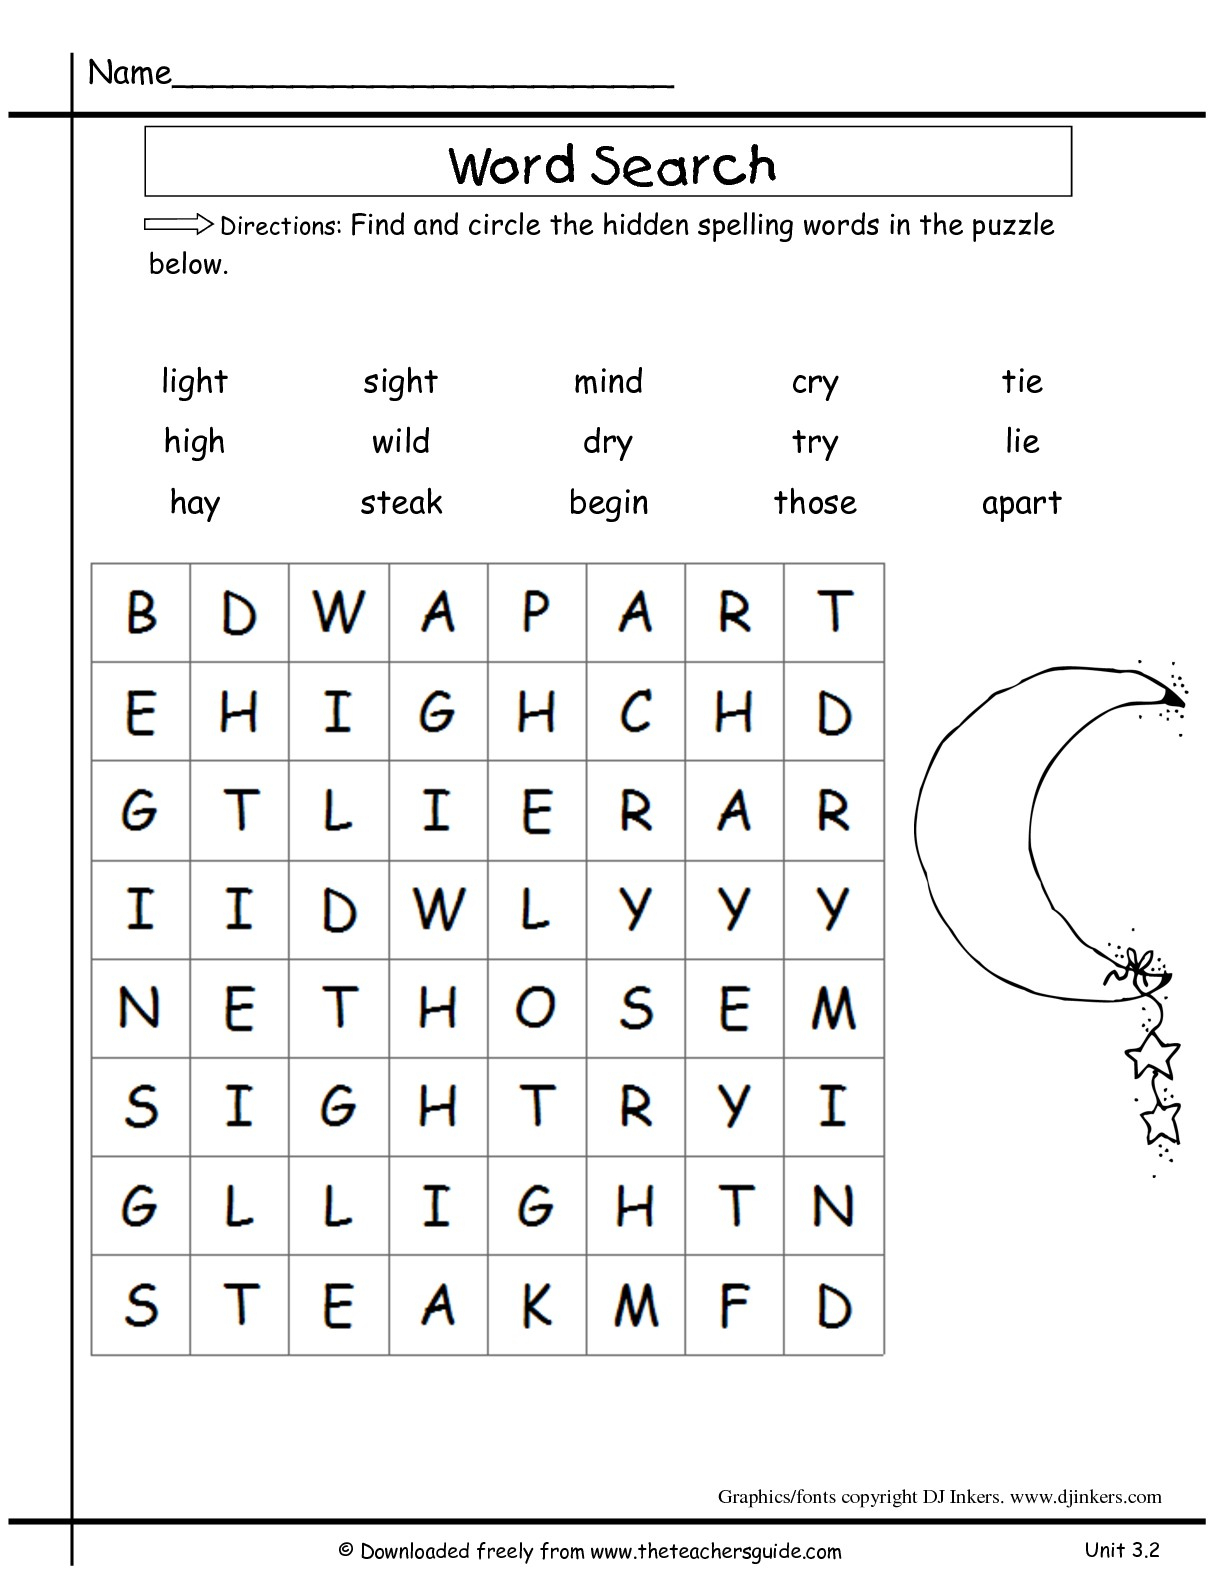 Wonders Second Grade Unit Three Week Two Printouts - Printable Crossword Puzzle For 2Nd Graders